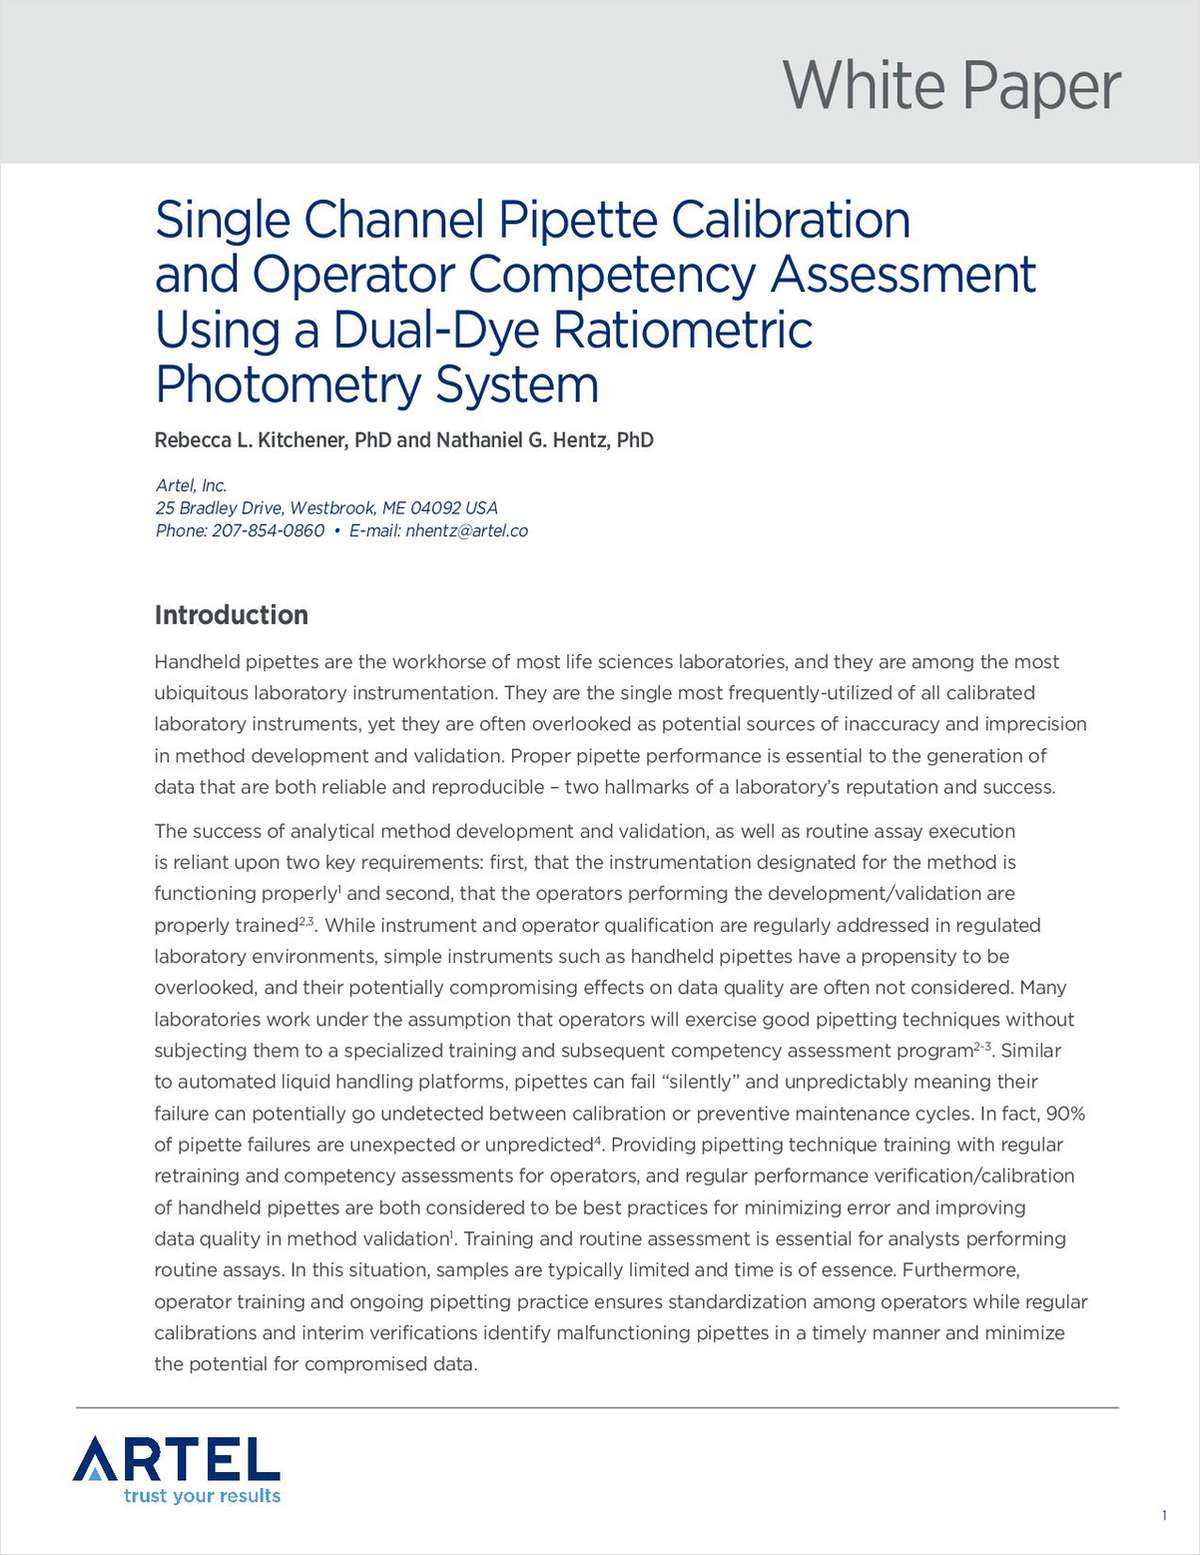 Single Channel Pipette Calibration and Operator Competency Assessment Using a Dual-Dye Ratiometric Photometry System